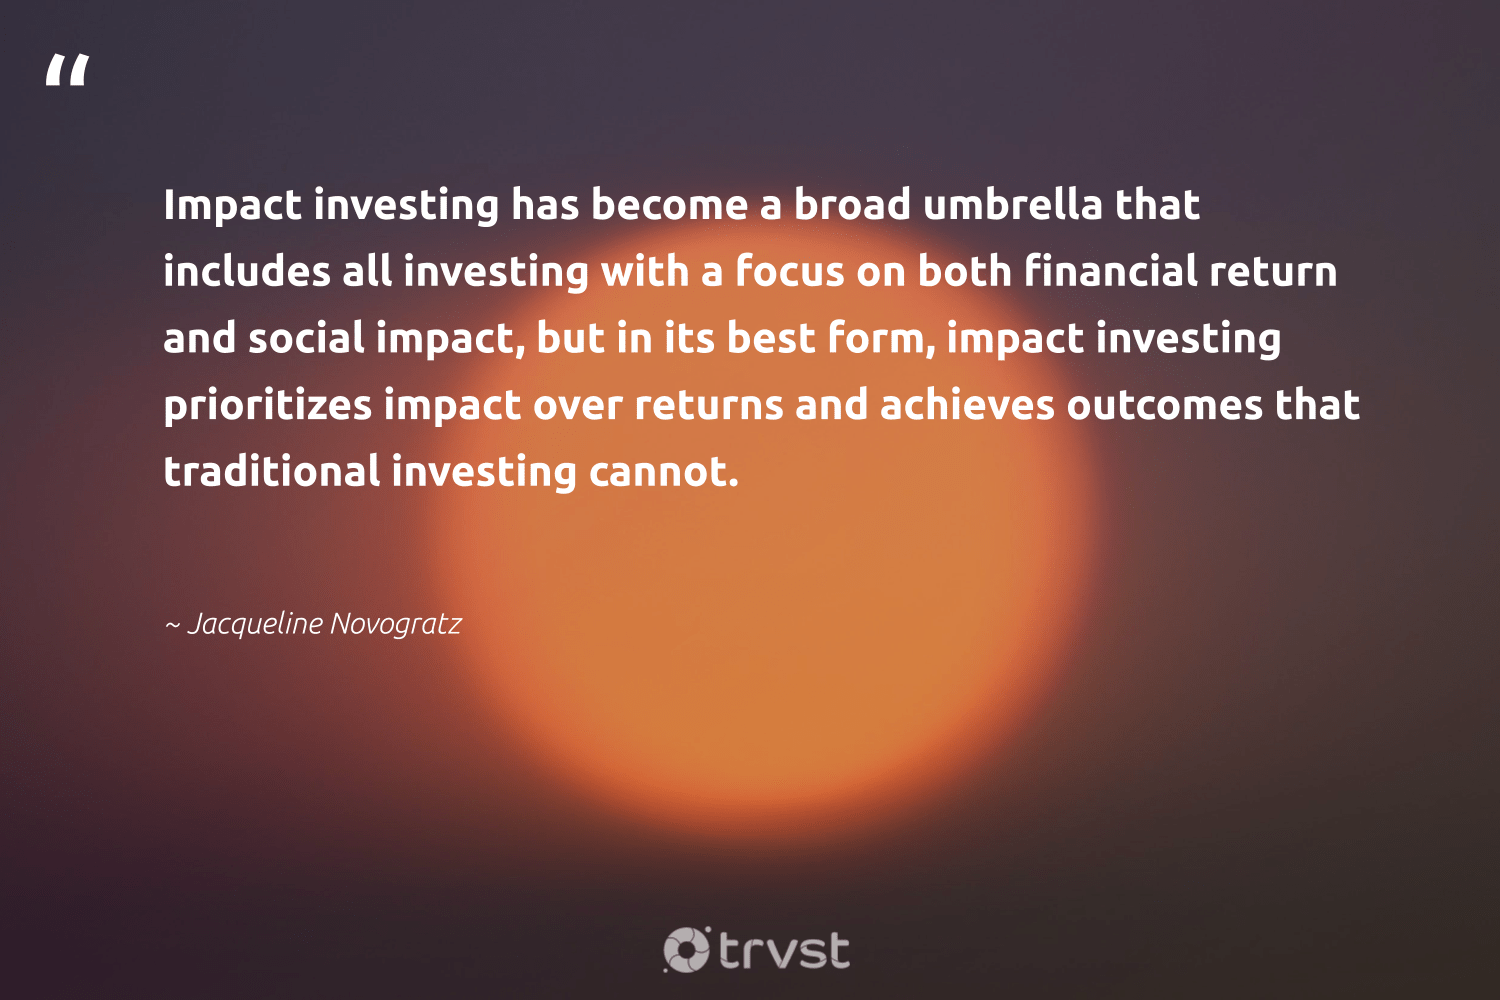 """""""Impact investing has become a broad umbrella that includes all investing with a focus on both financial return and social impact, but in its best form, impact investing prioritizes impact over returns and achieves outcomes that traditional investing cannot.""""  - Jacqueline Novogratz #trvst #quotes #impact #socialimpact #impactinvesting #focus #impactfinance #socialchange #sustainable #takeaction #weareallone #dogood"""